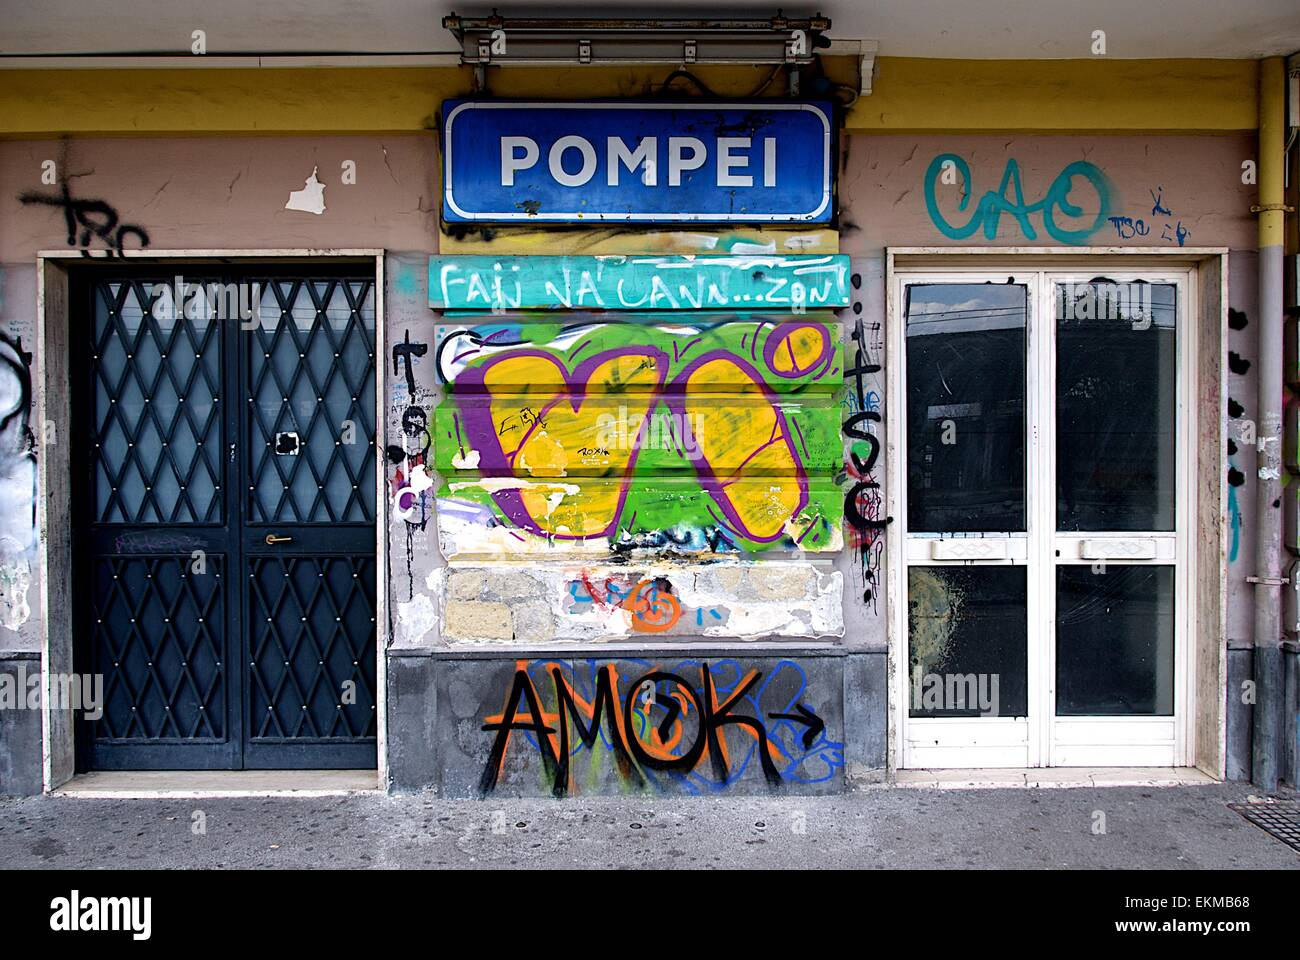 Graffiti on Pompei Sanctuary train station platform in Italy with two doors to the ticket hall and waiting area & Graffiti on Pompei Sanctuary train station platform in Italy with ...